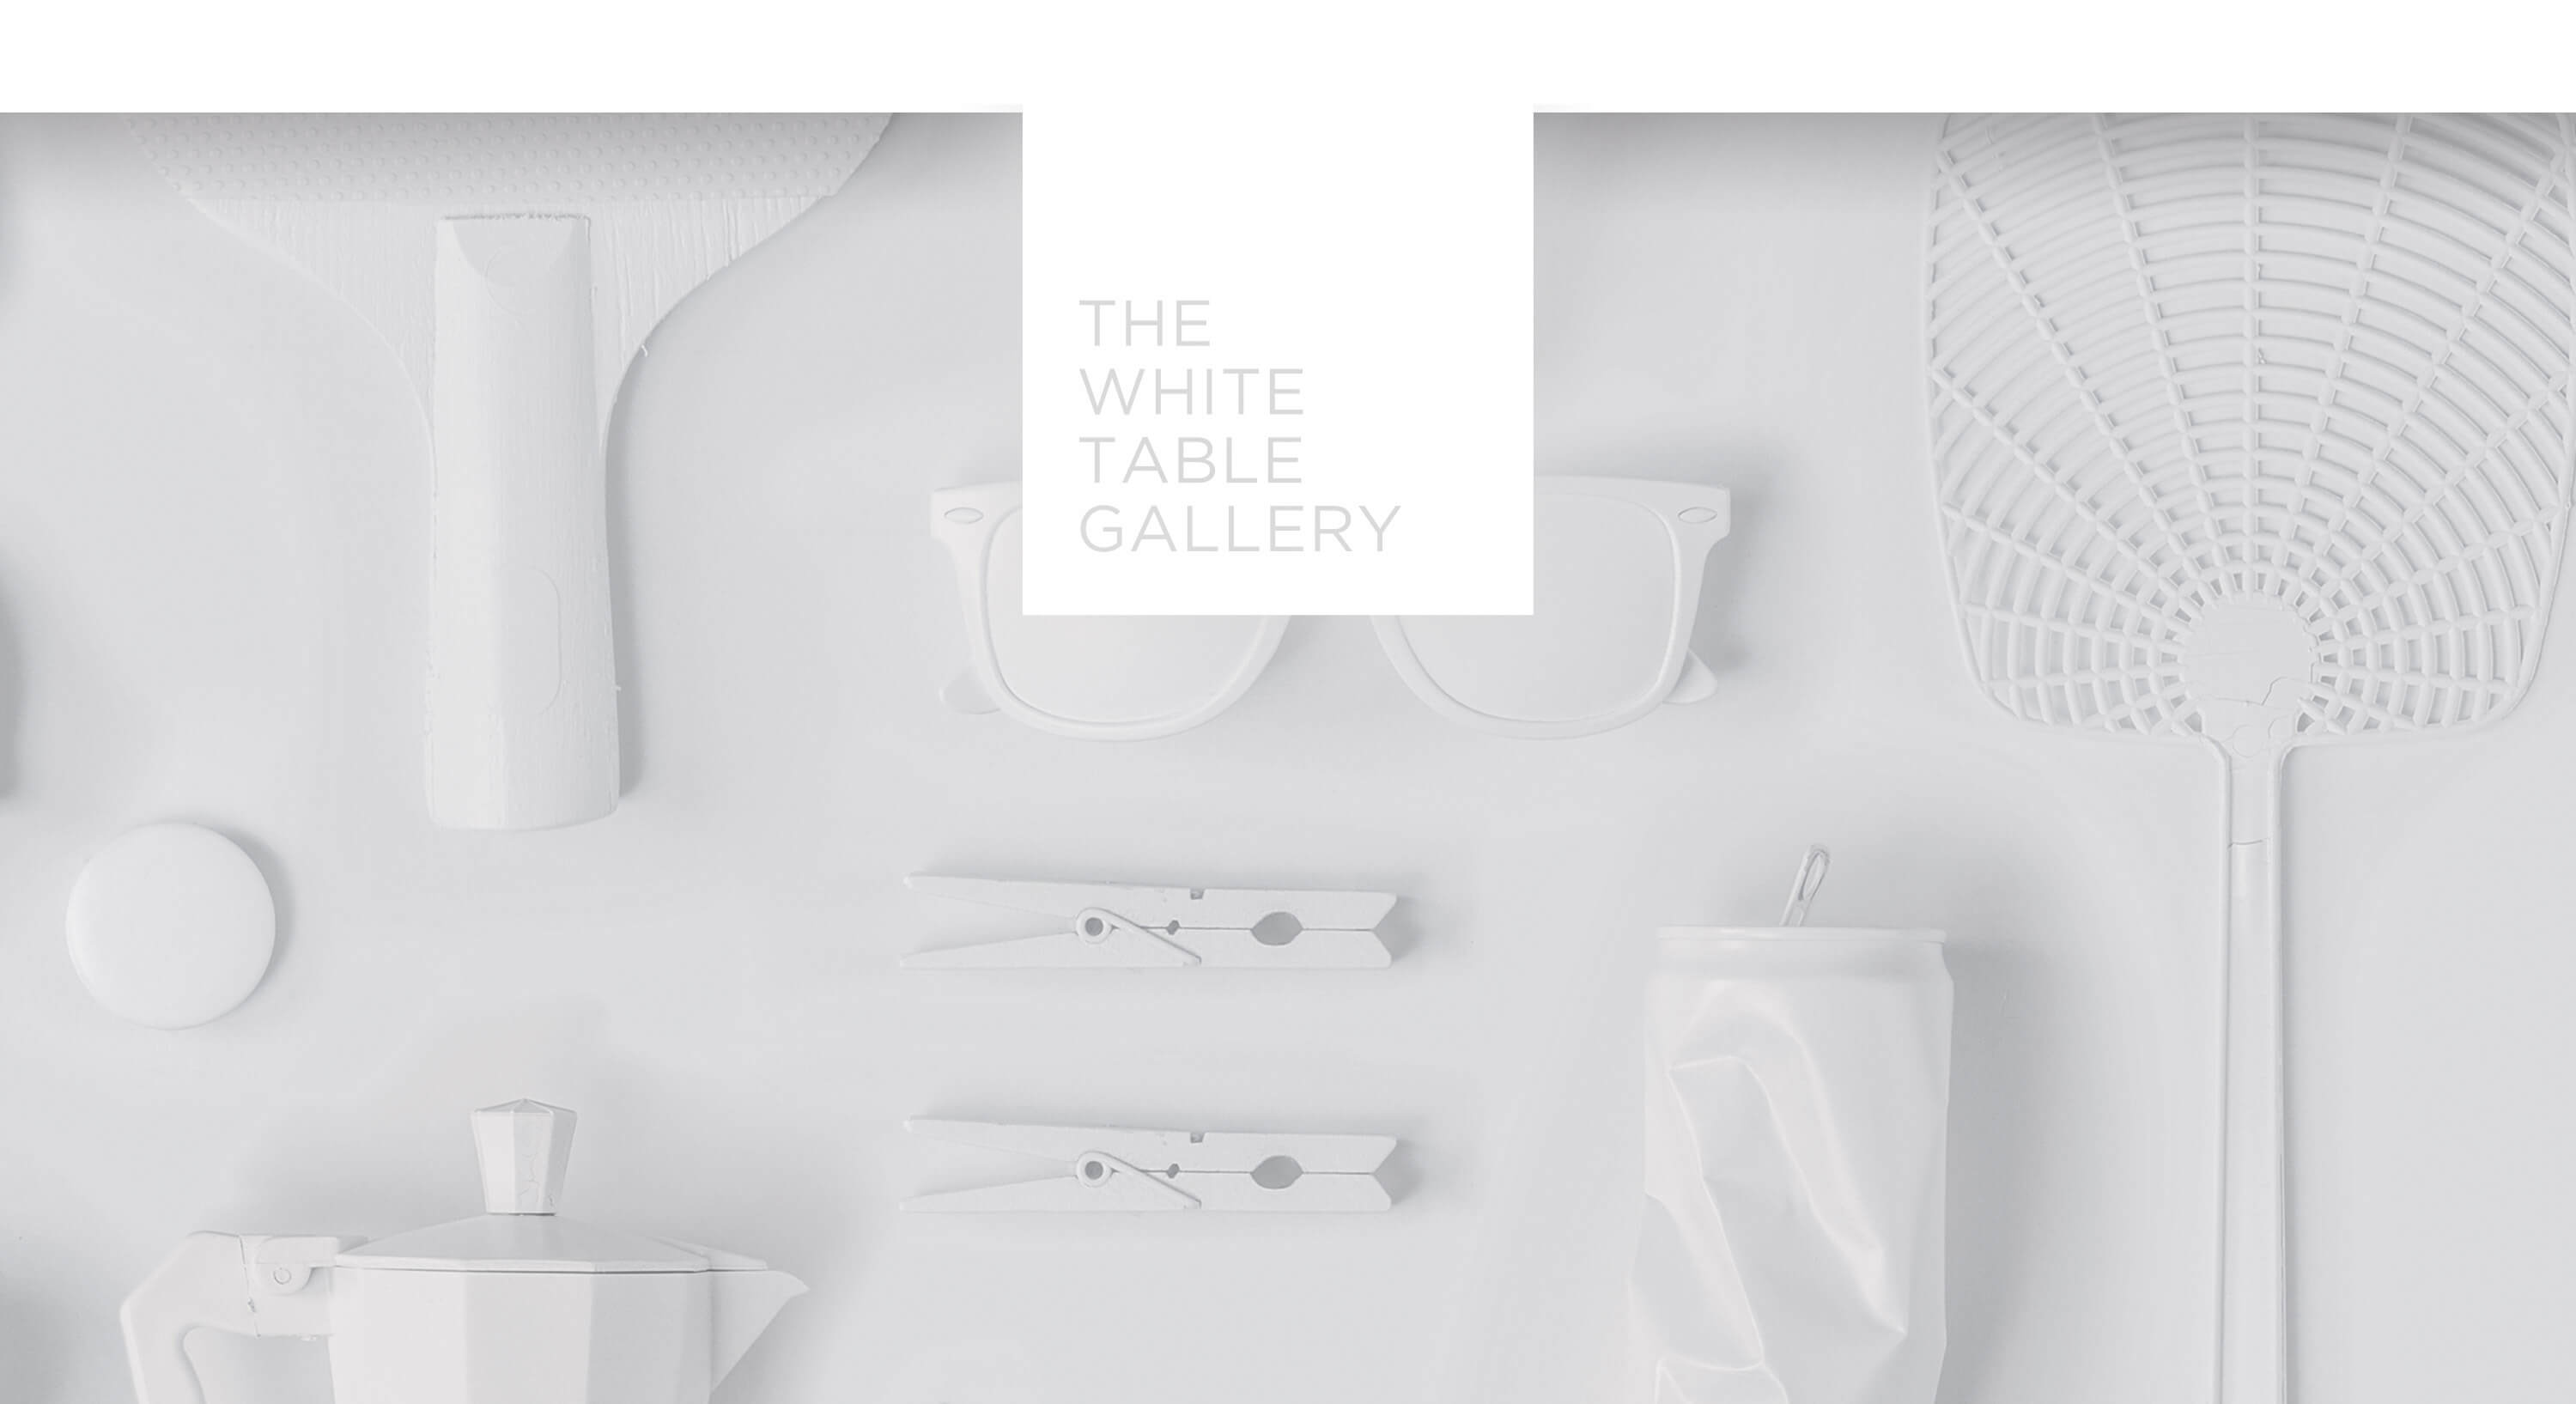 UNAIDS white table gallery - Blossom